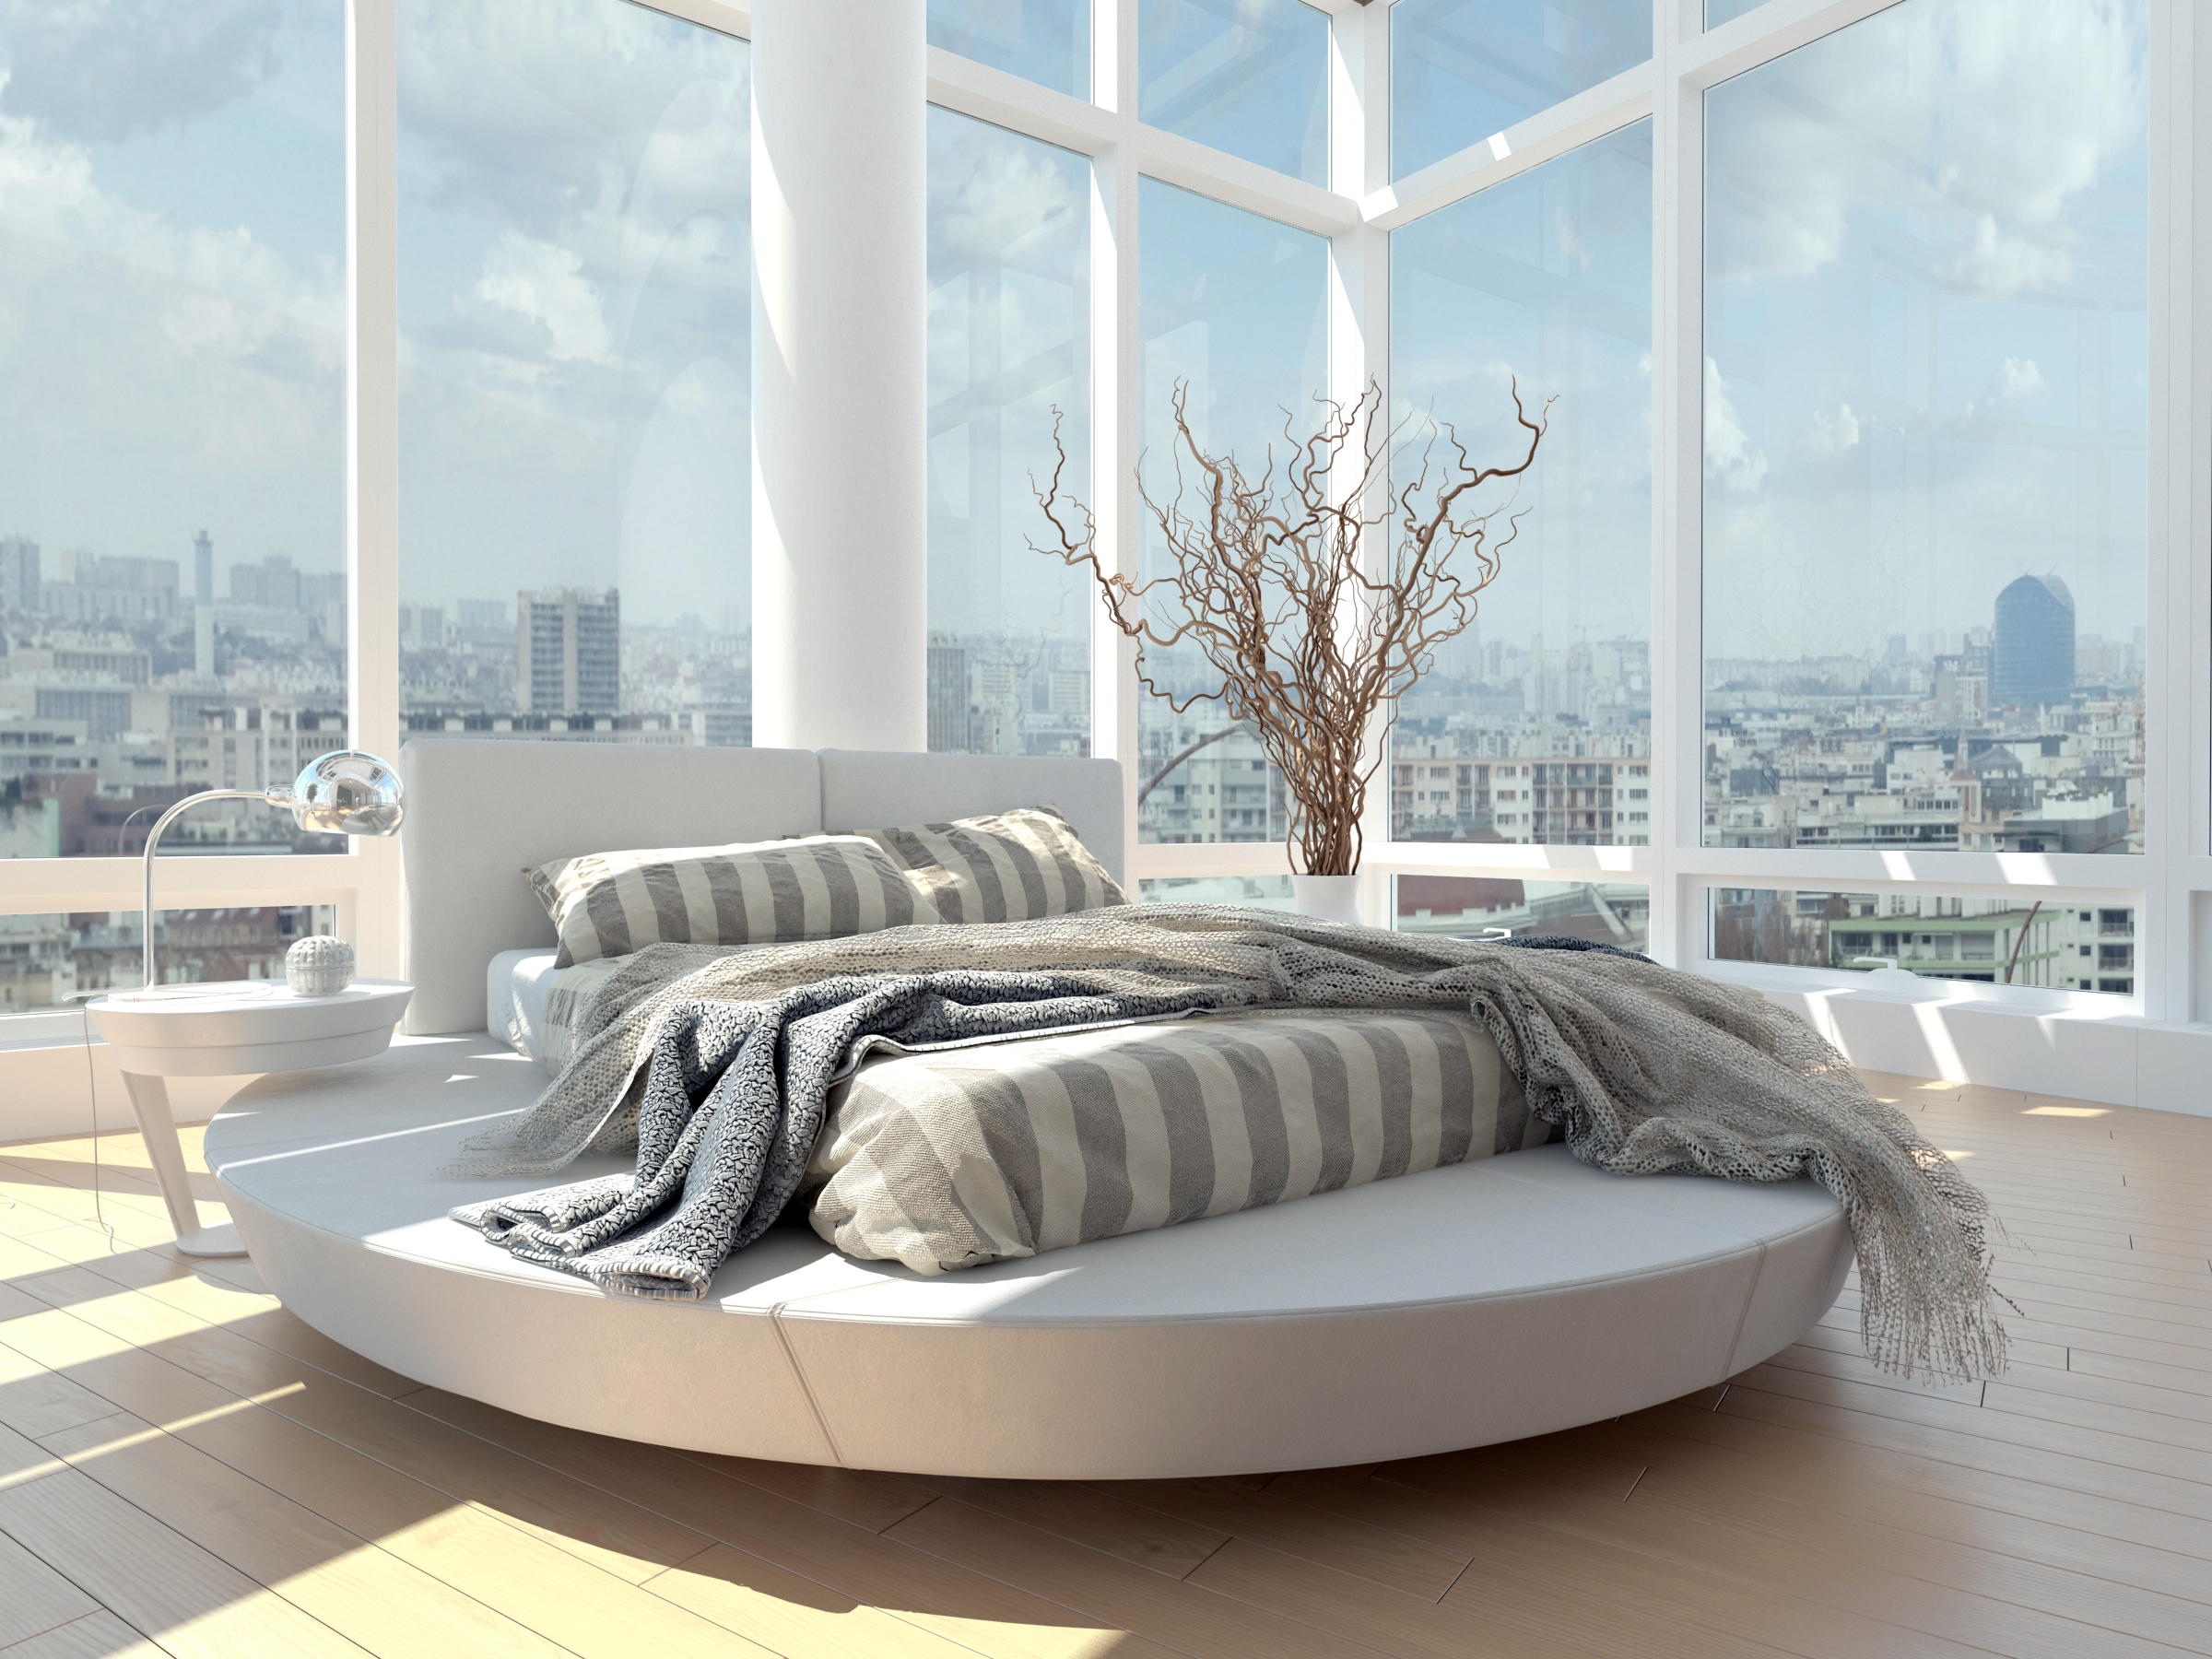 Round Bed Risers | Round Beds | Round Bed Sheets Ikea